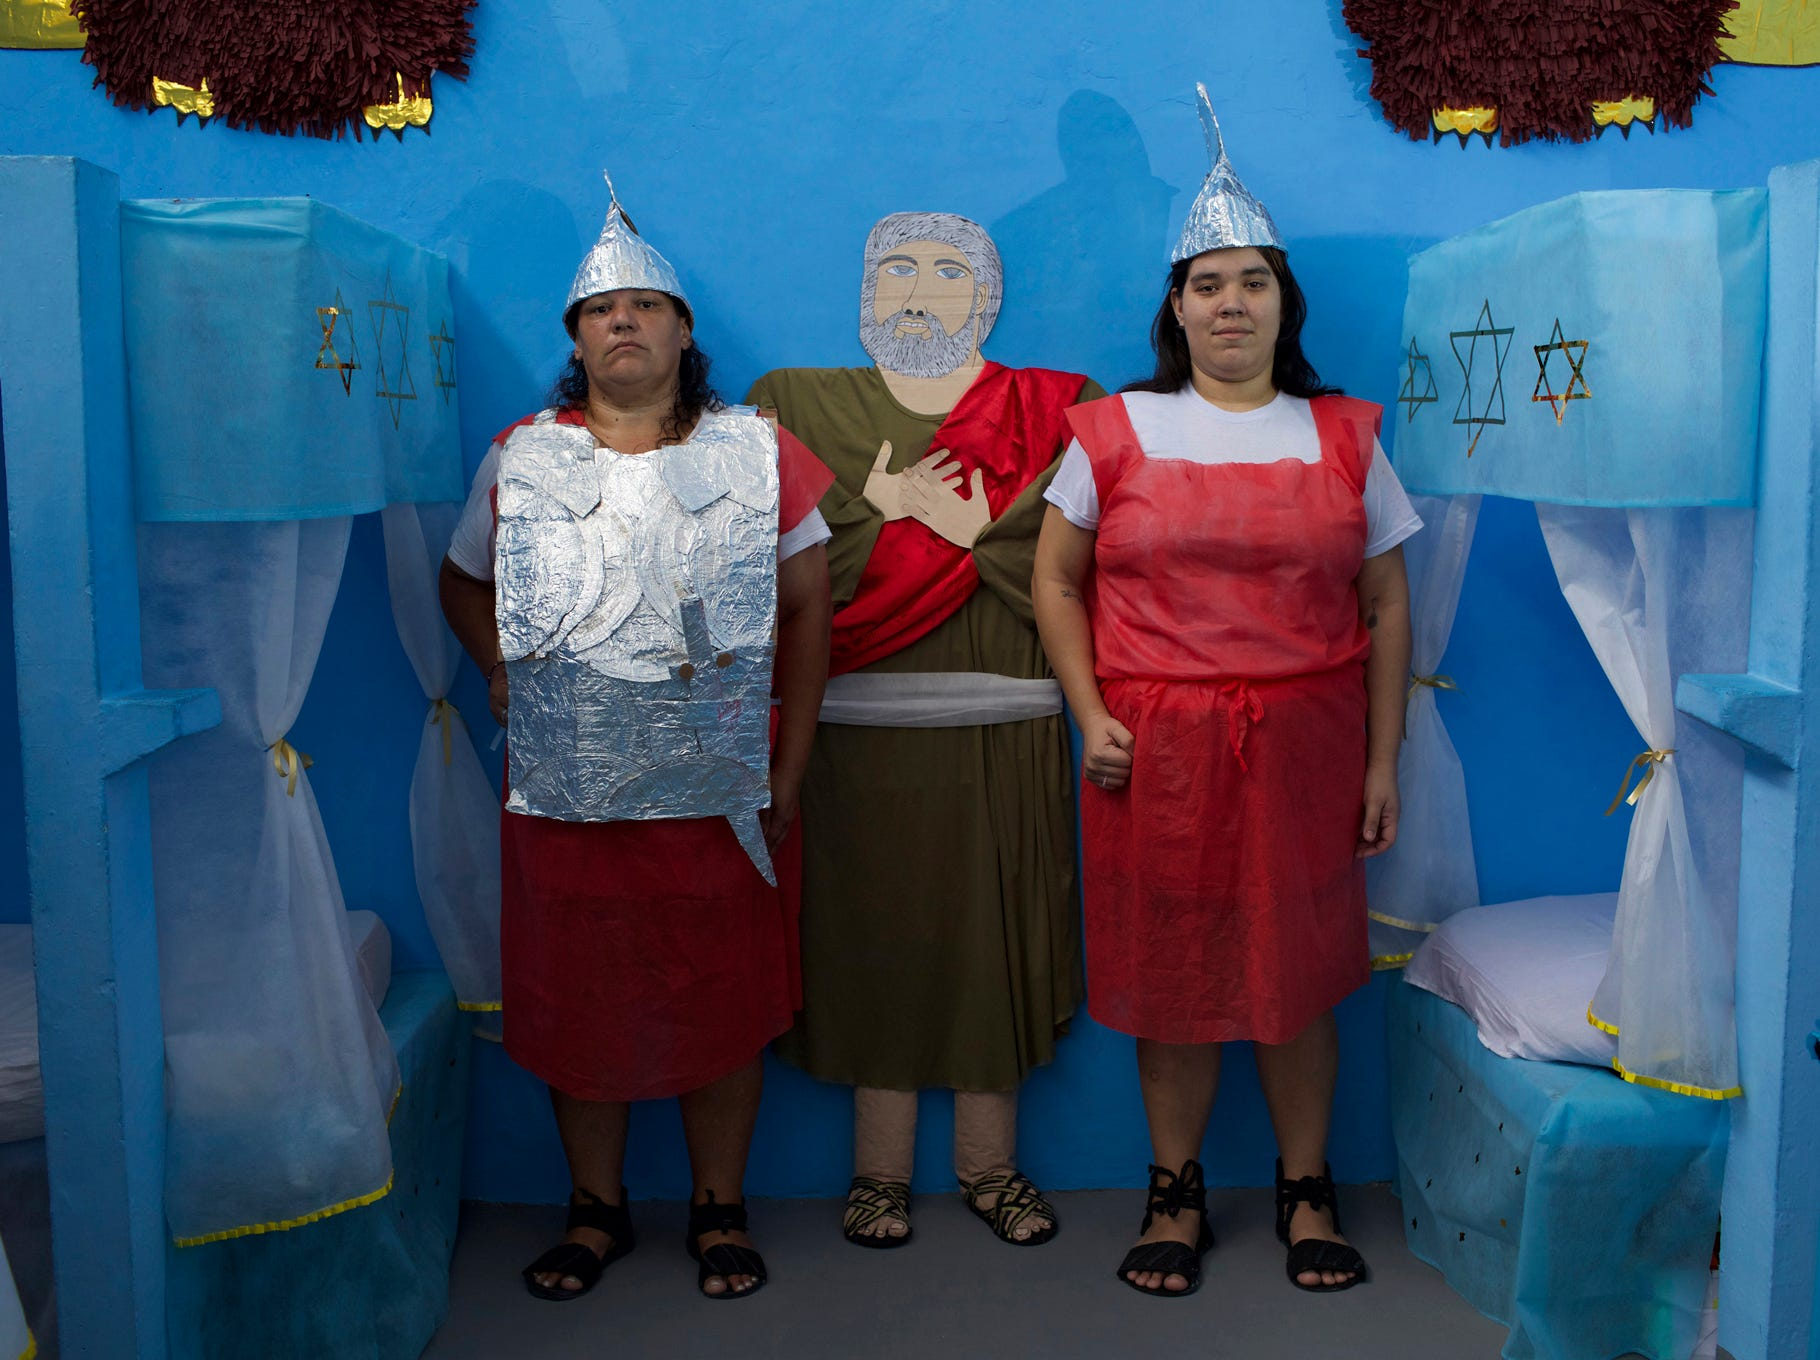 Female inmates dressed as guards pose for a photo during Nelson Hungria Prison's annual Christmas event for inmates and jail staff in Rio de Janeiro, Brazil, Thursday, Dec. 13, 2018. Inmates serving time for offenses from burglary to homicide spent weeks decking out their cell blocks with handmade Christmas decorations and planning Bible related performances. (AP Photo/Silvia Izquierdo)